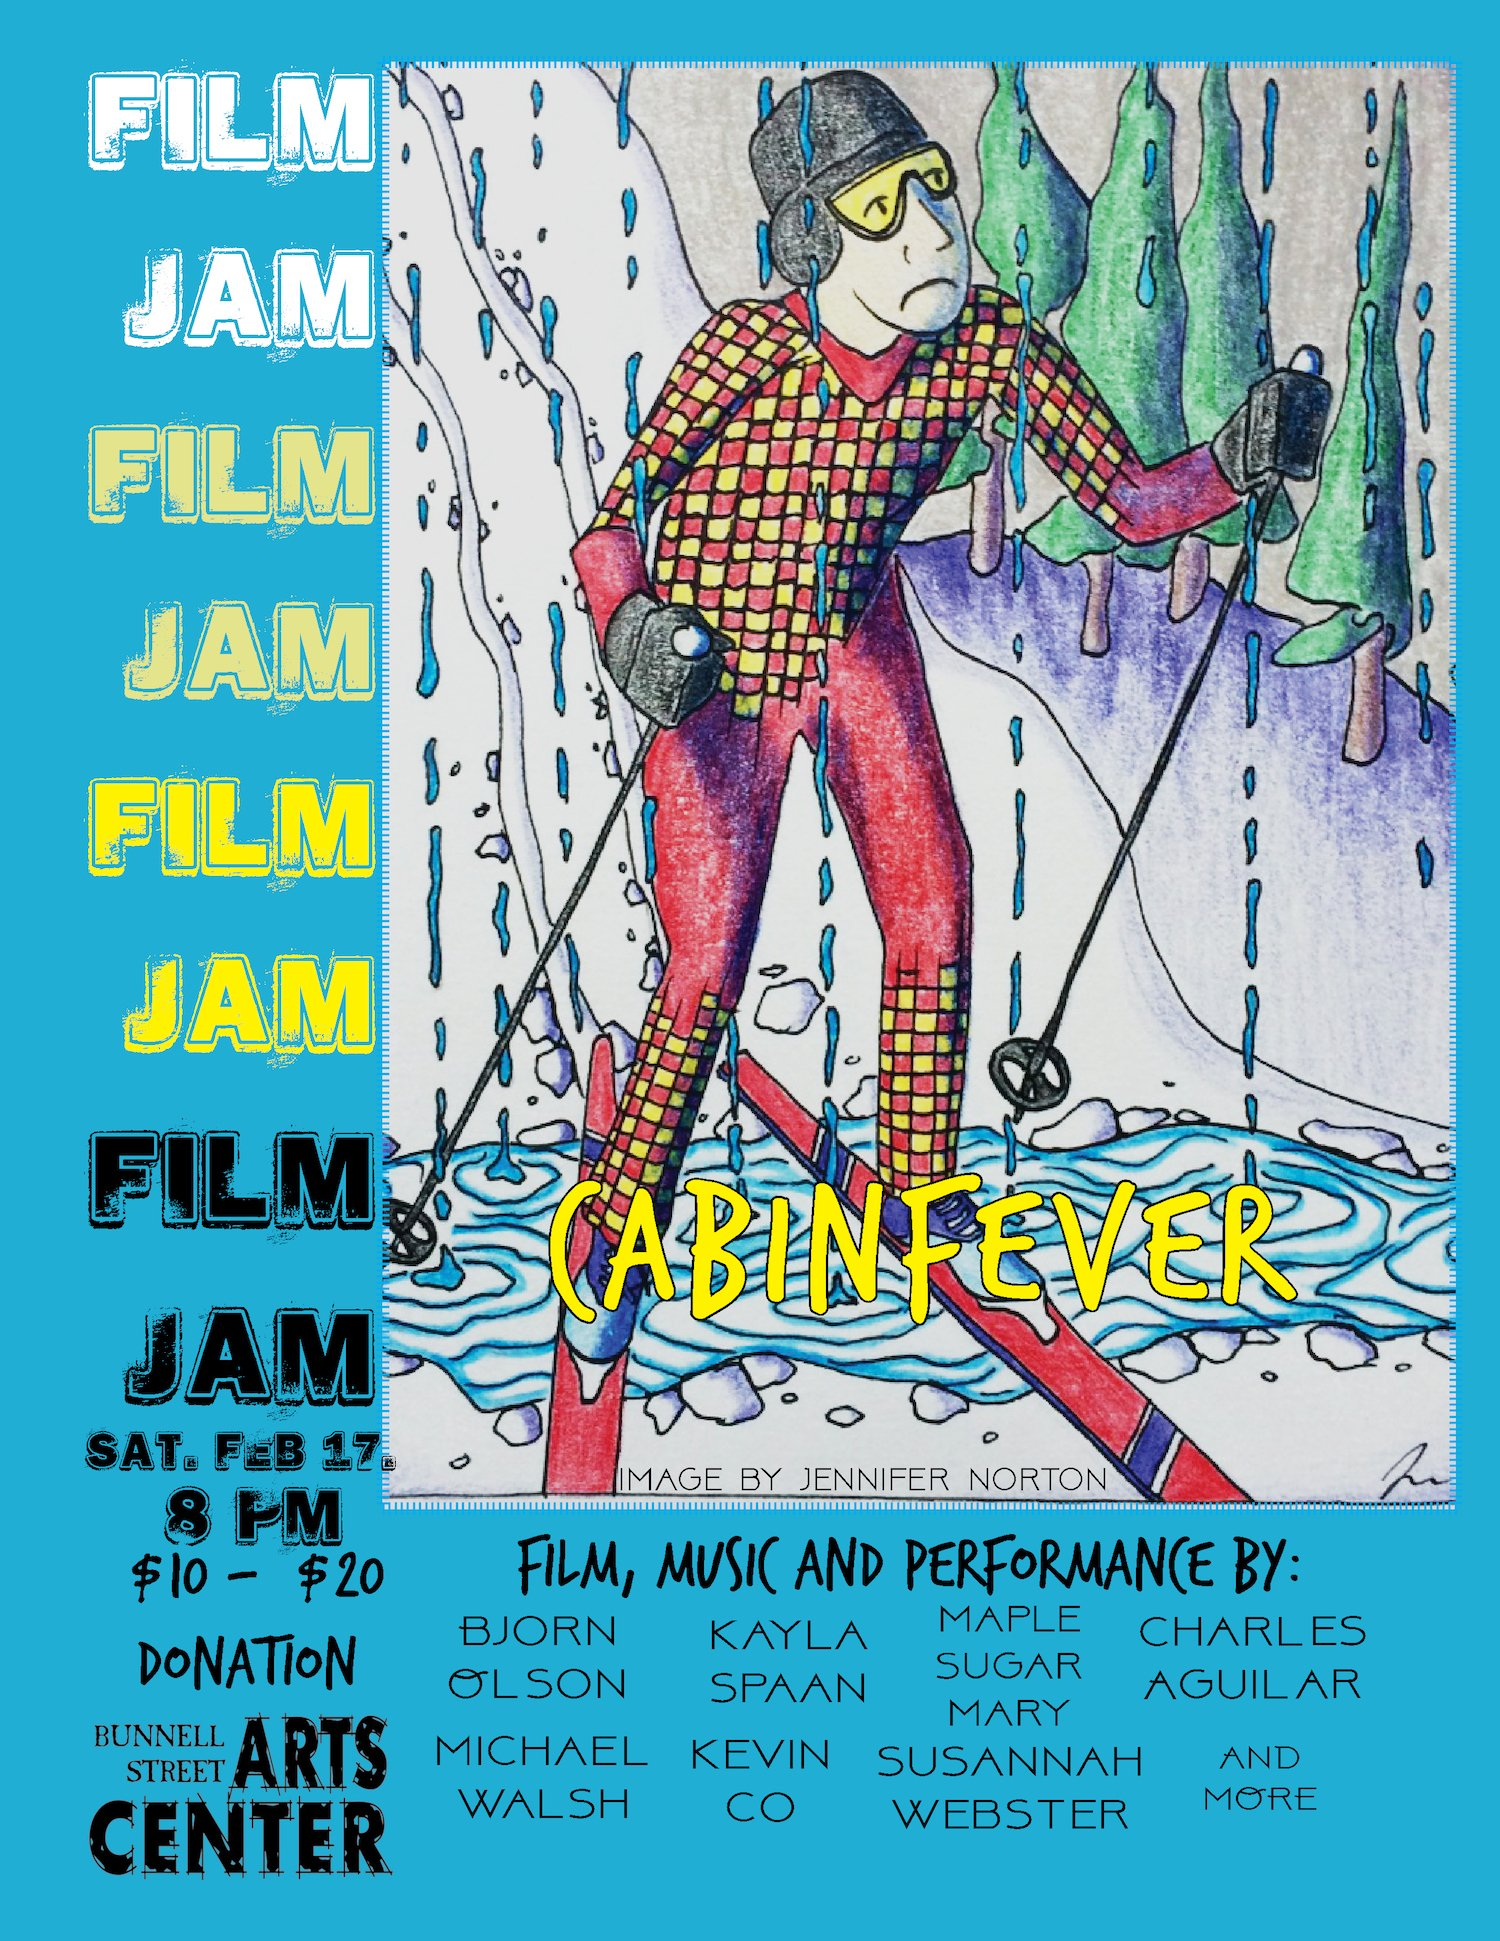 Film Jam: Cabin Fever, Saturday February 17th, 8p